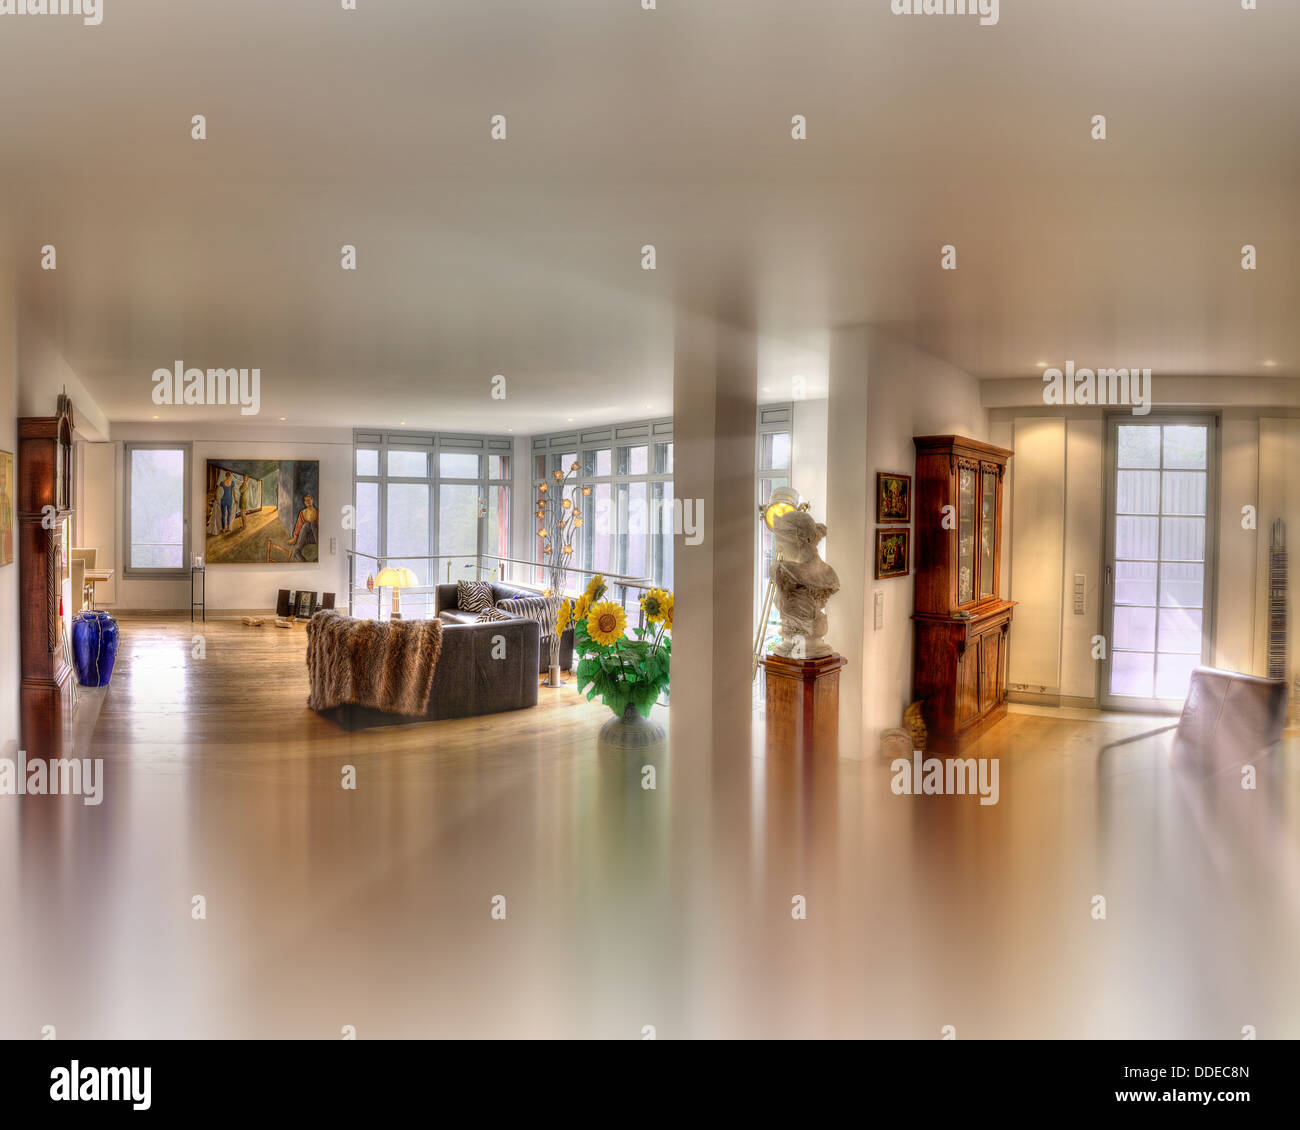 ARCHITECTURE: Contemporary livingroom setting (HDR image) - Stock Image